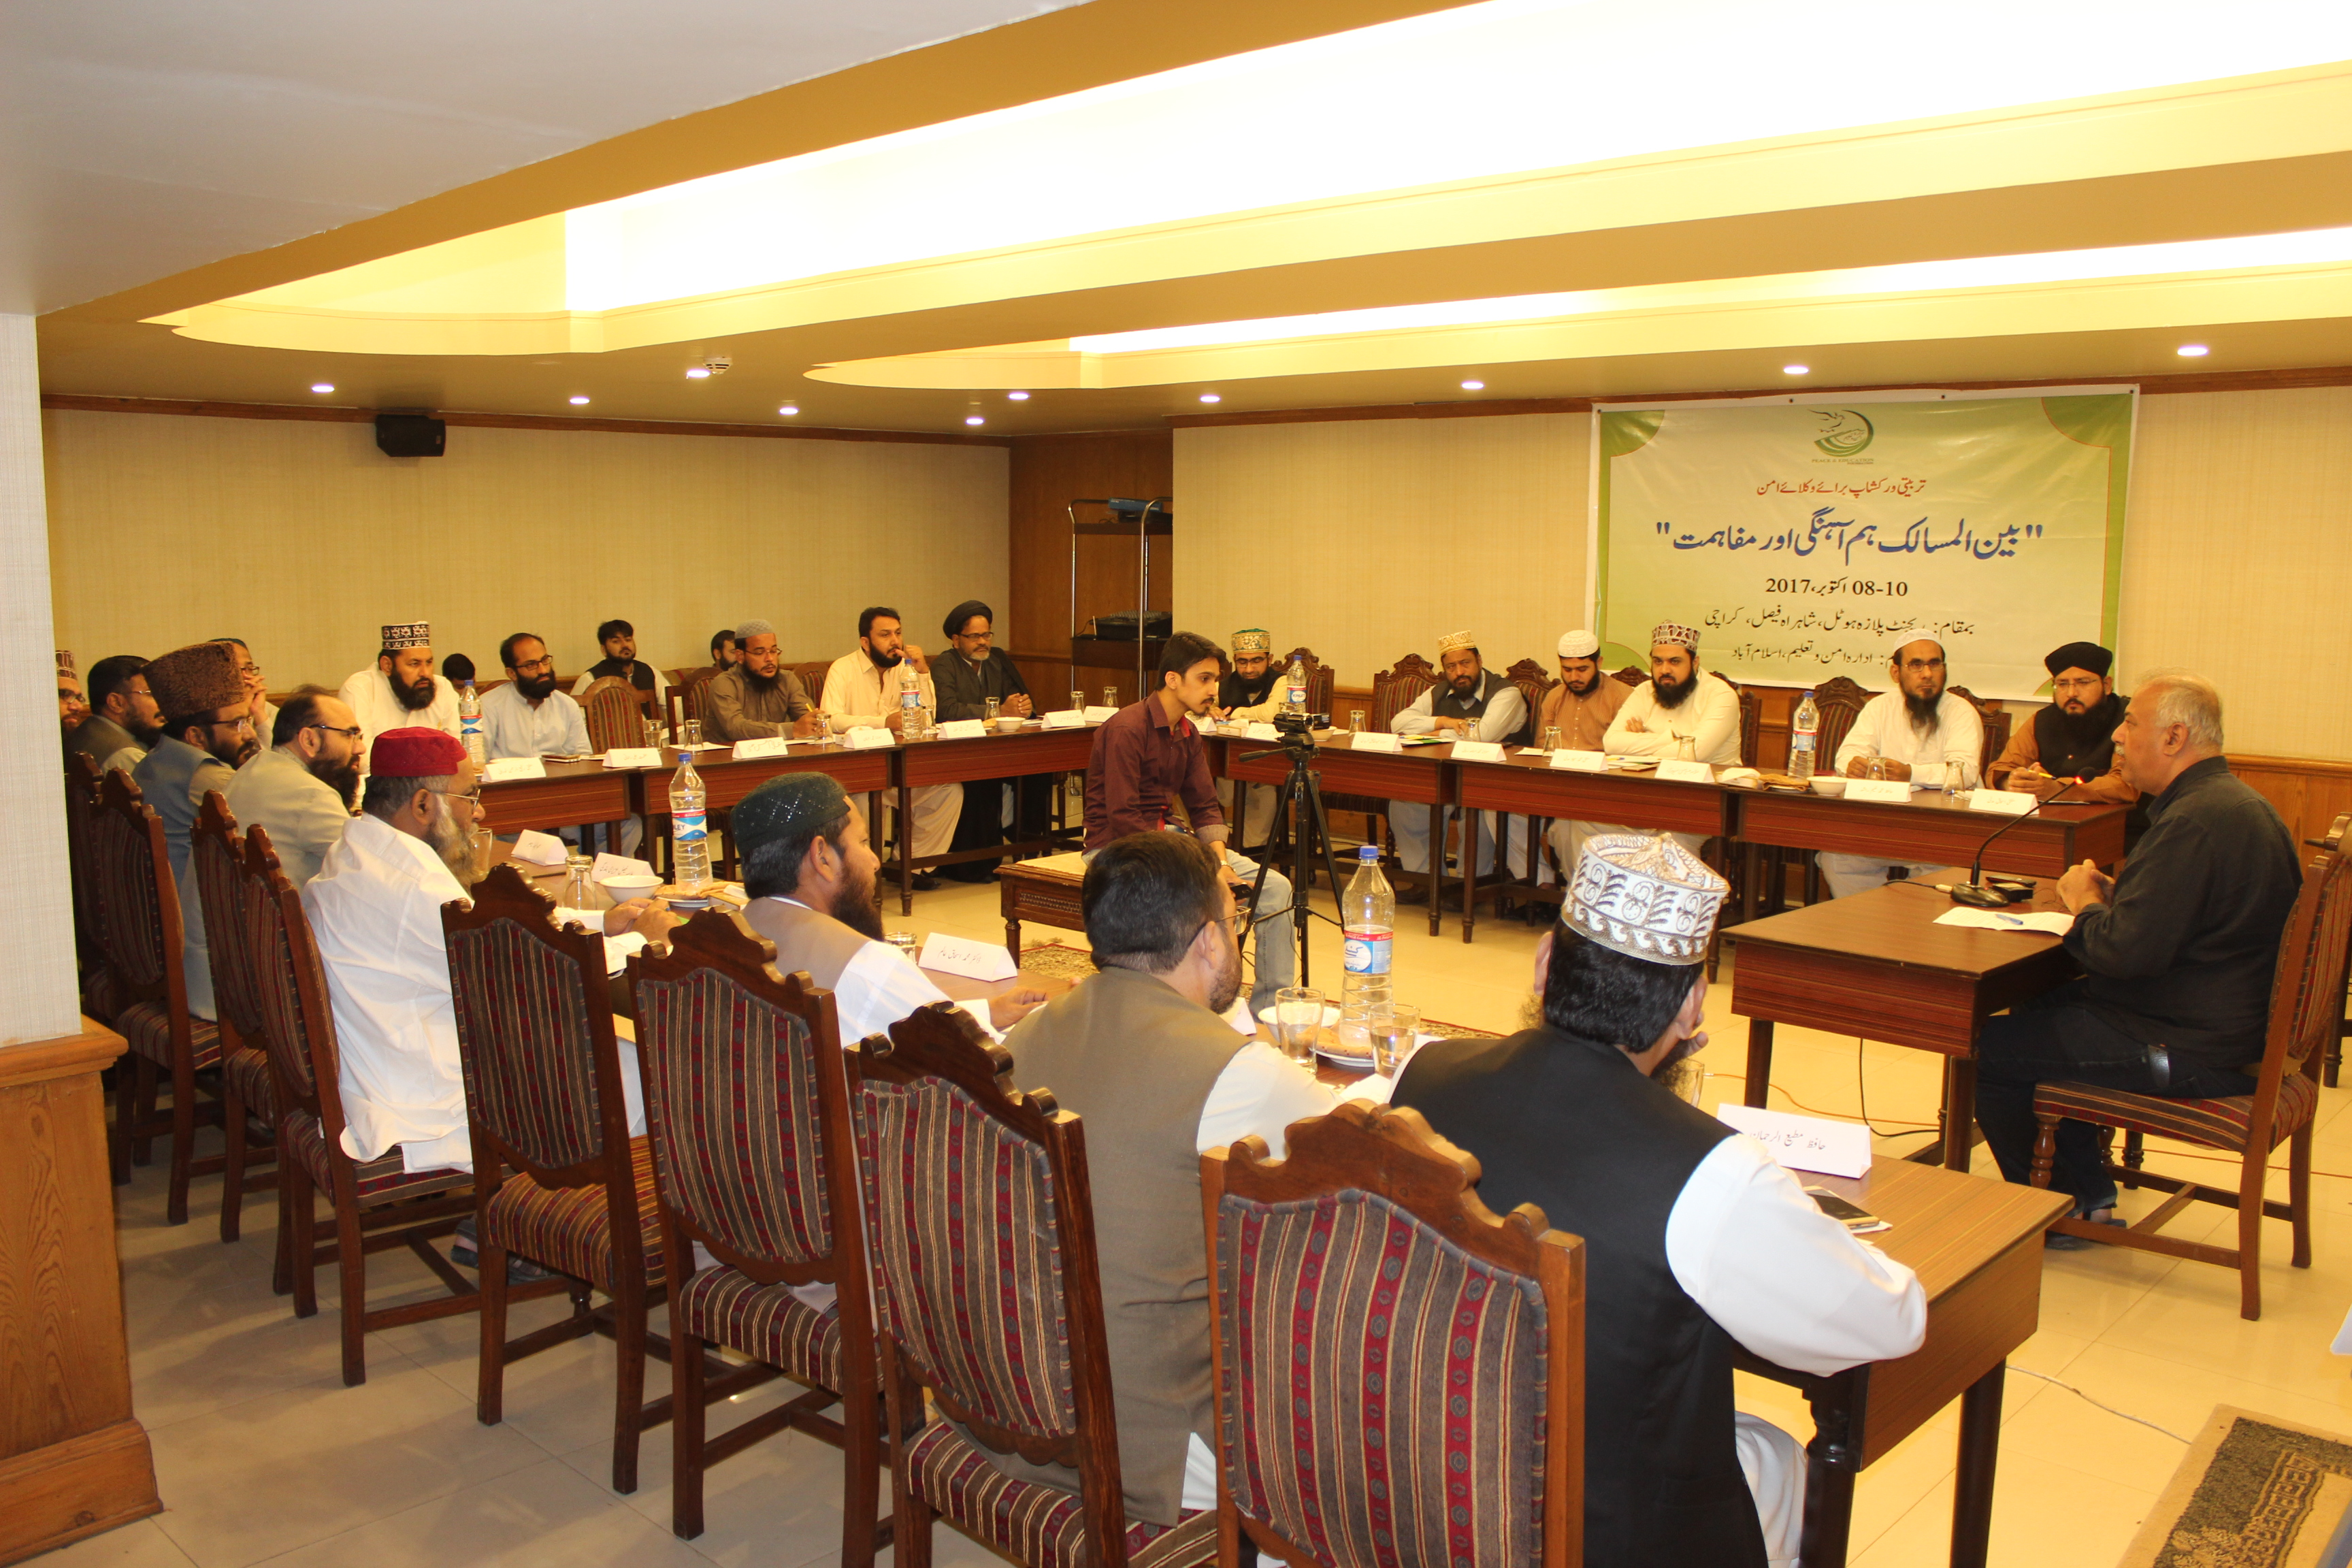 Religious scholars in Karachi last October 10 participate in a workshop aimed at reducing sectarian violence and conflict. Pakistan saw a decline in sectarian violence in 2017 for the fourth year in a row, according to the Pak Institute for Peace Studies (PIPS). [Zia Ur Rehman]